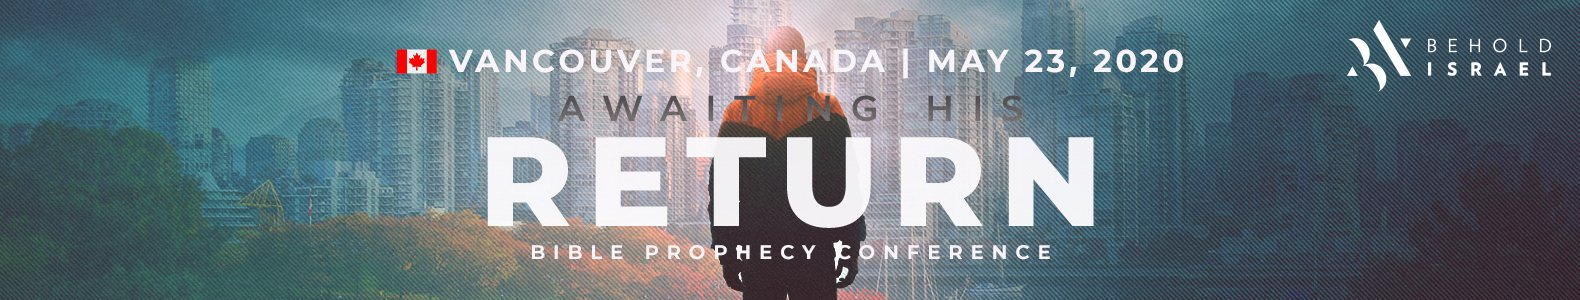 Awaiting His Return Conference 2020 Canada